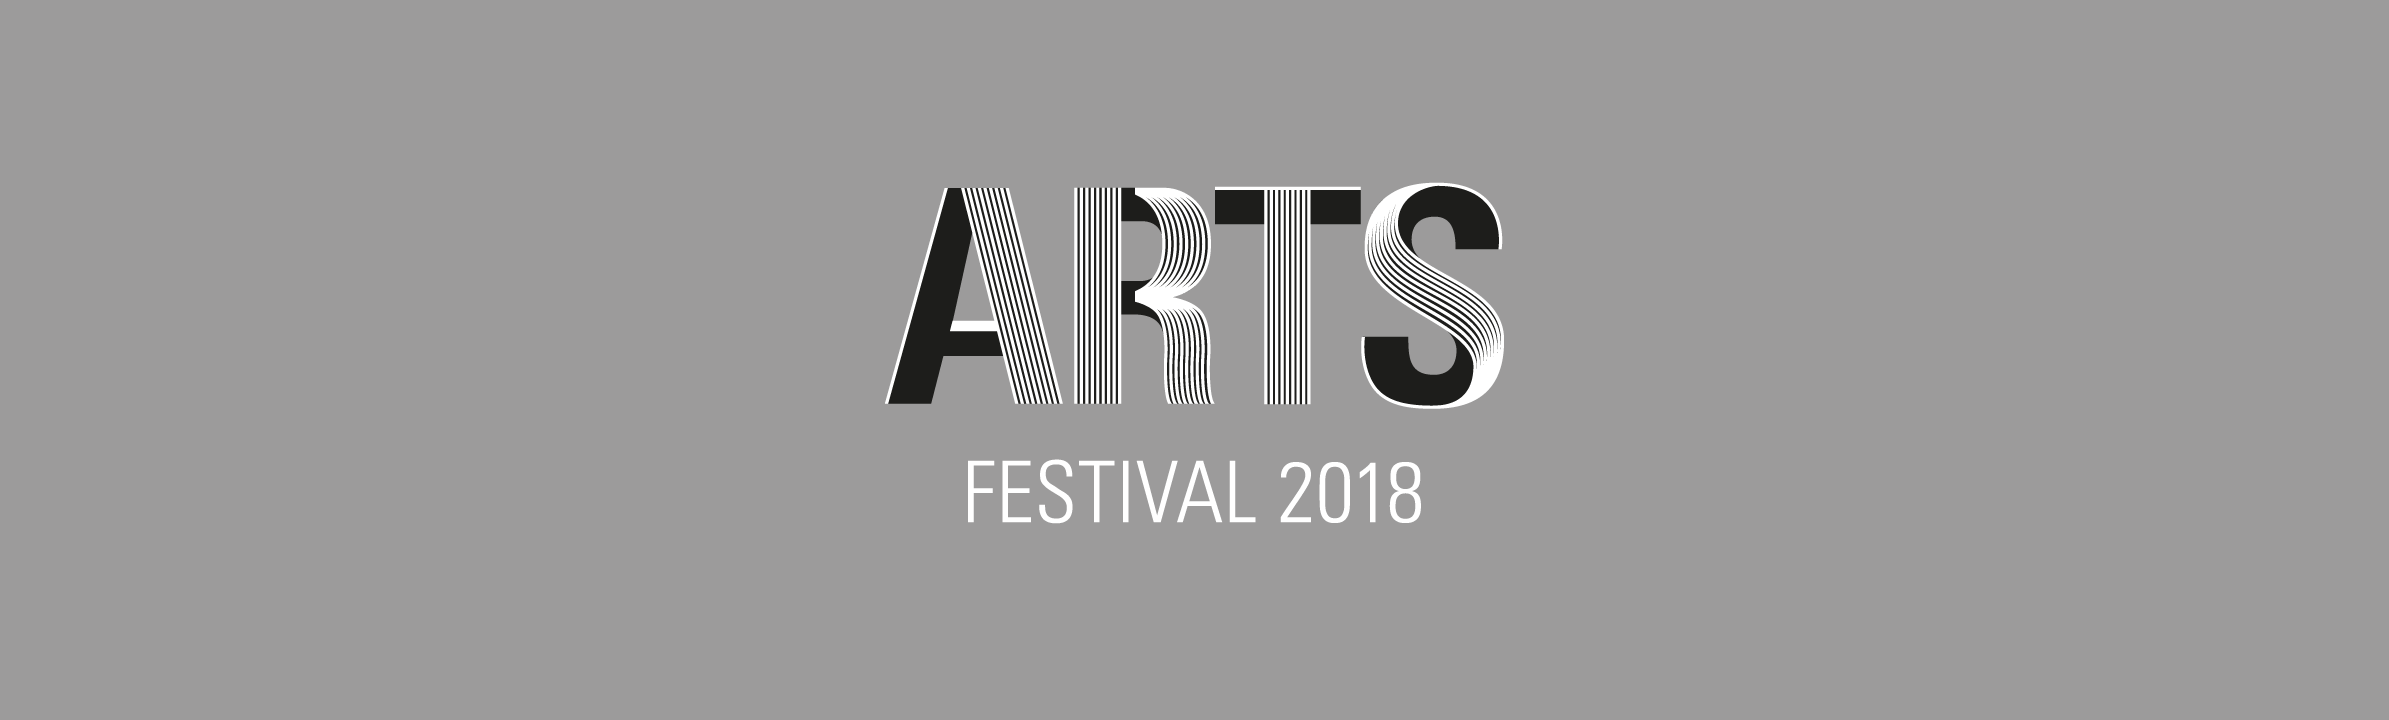 Hp arts festival2018 bw